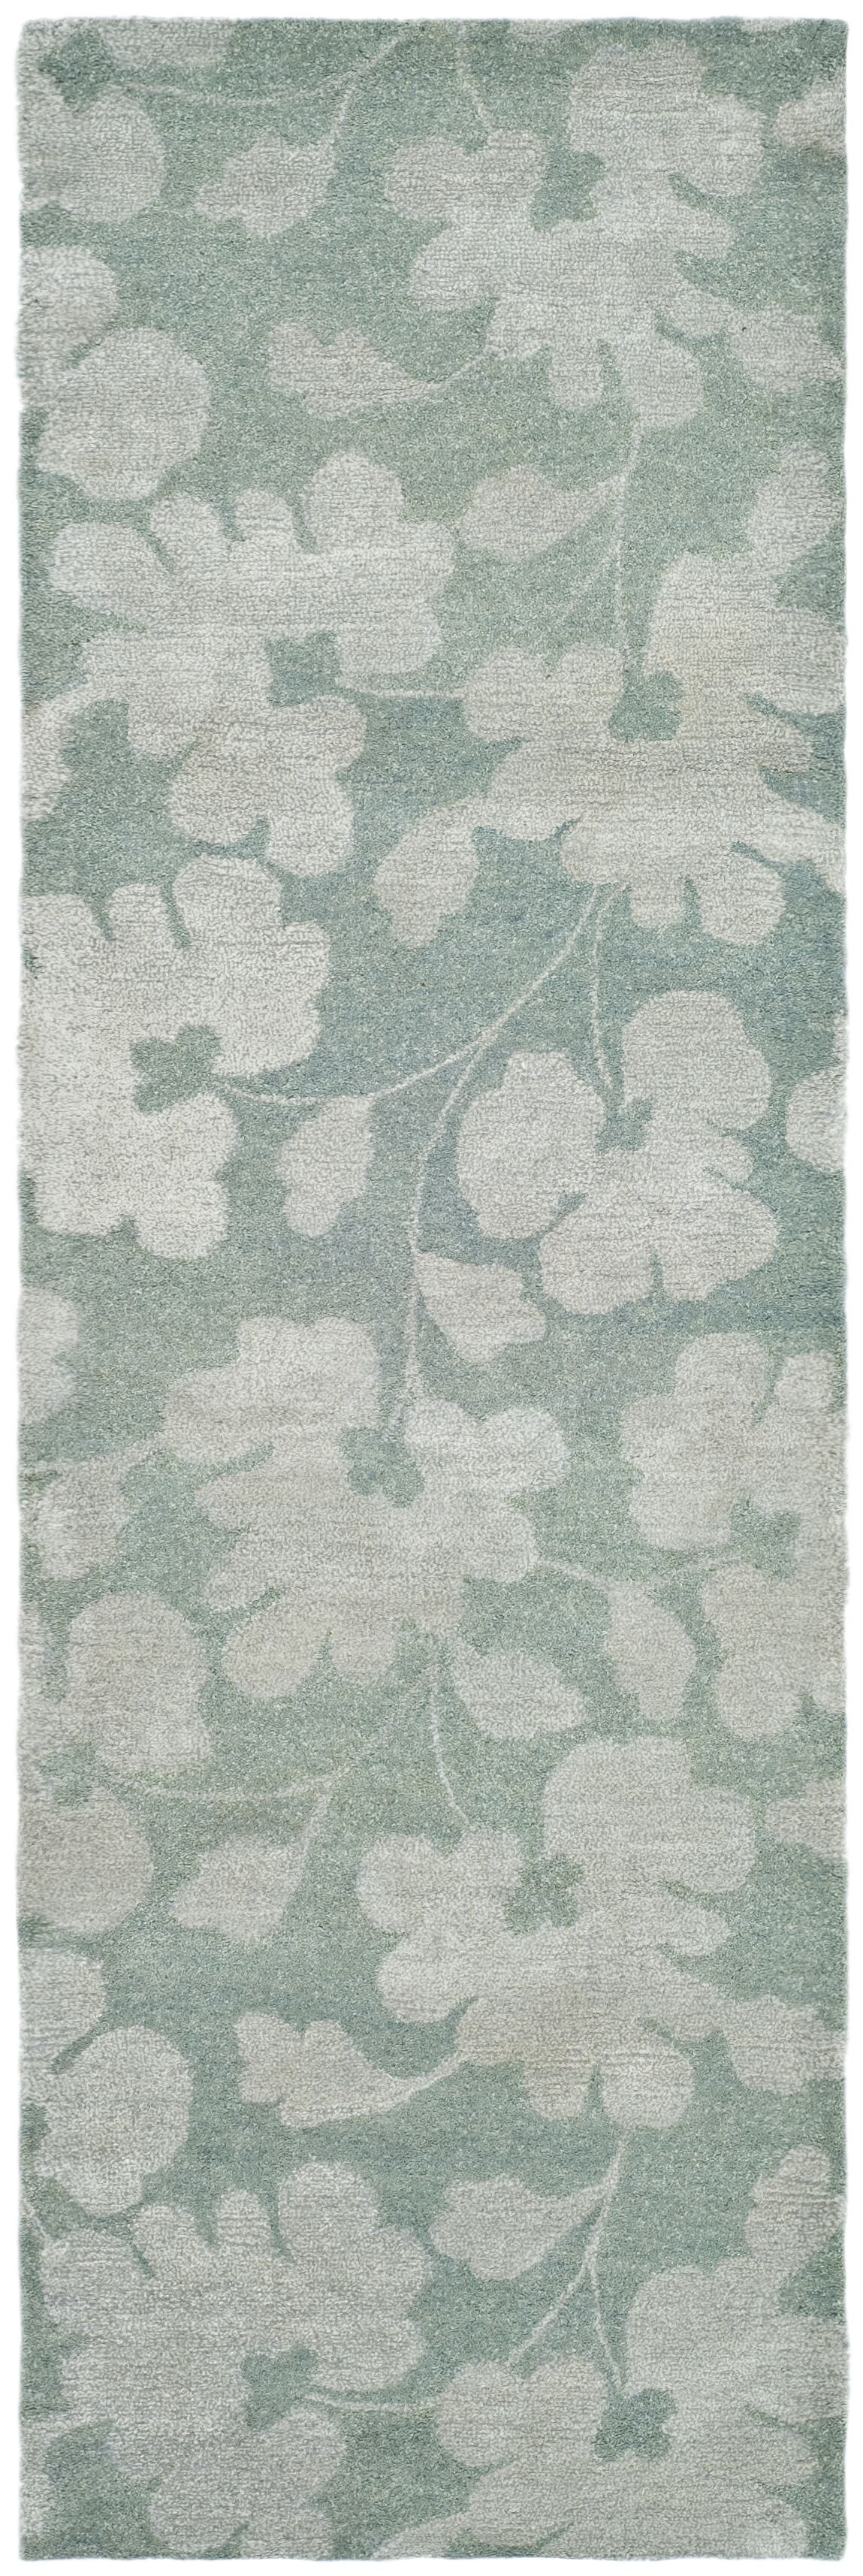 Armstrong Hand-Tufted Light Blue / Silver Area Rug Rug Size: Runner 2'6